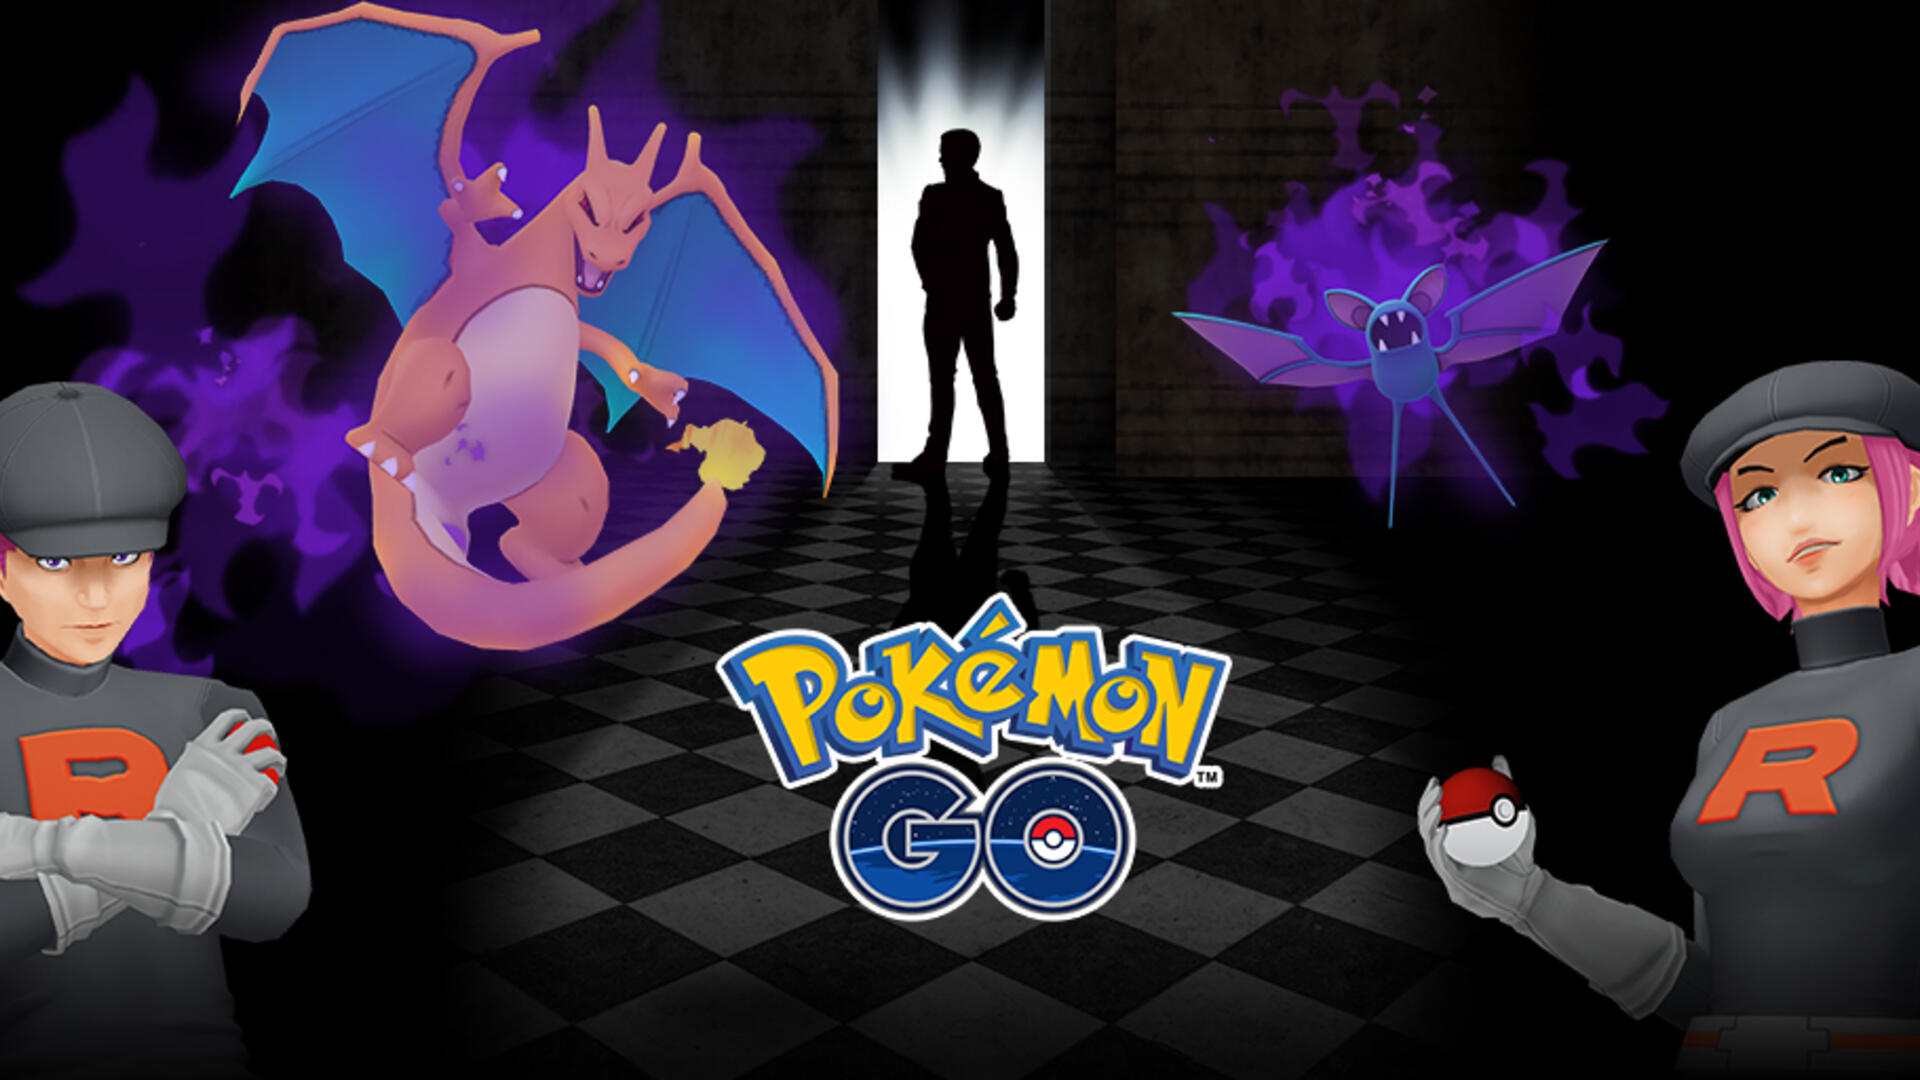 Pokemon Go: A Troubling Situation Research Guide